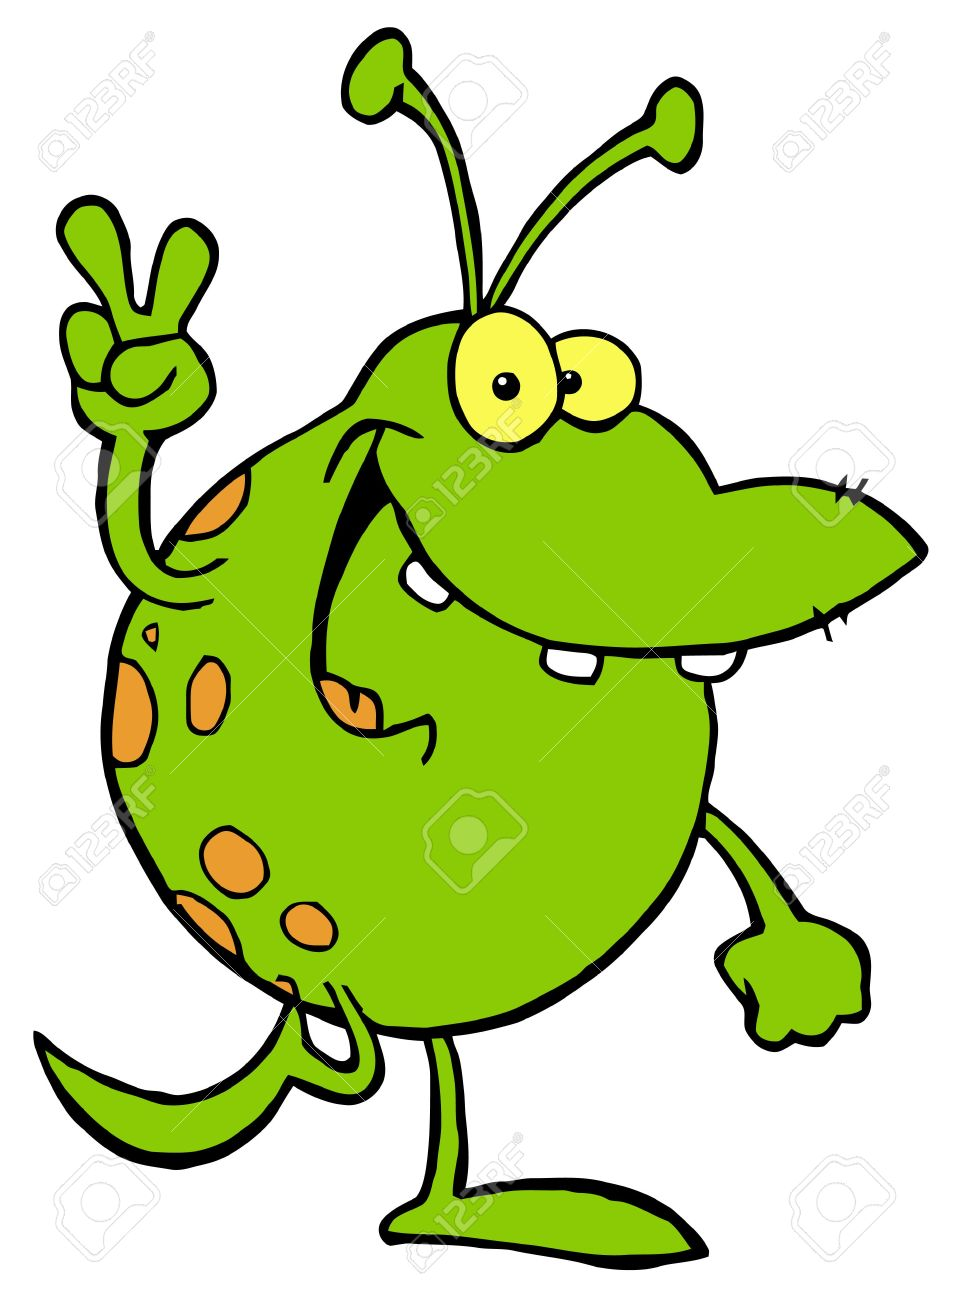 green alien smiling and gesturing the peace sign royalty free rh 123rf com Cute Frog Silhouette Cute Frogs